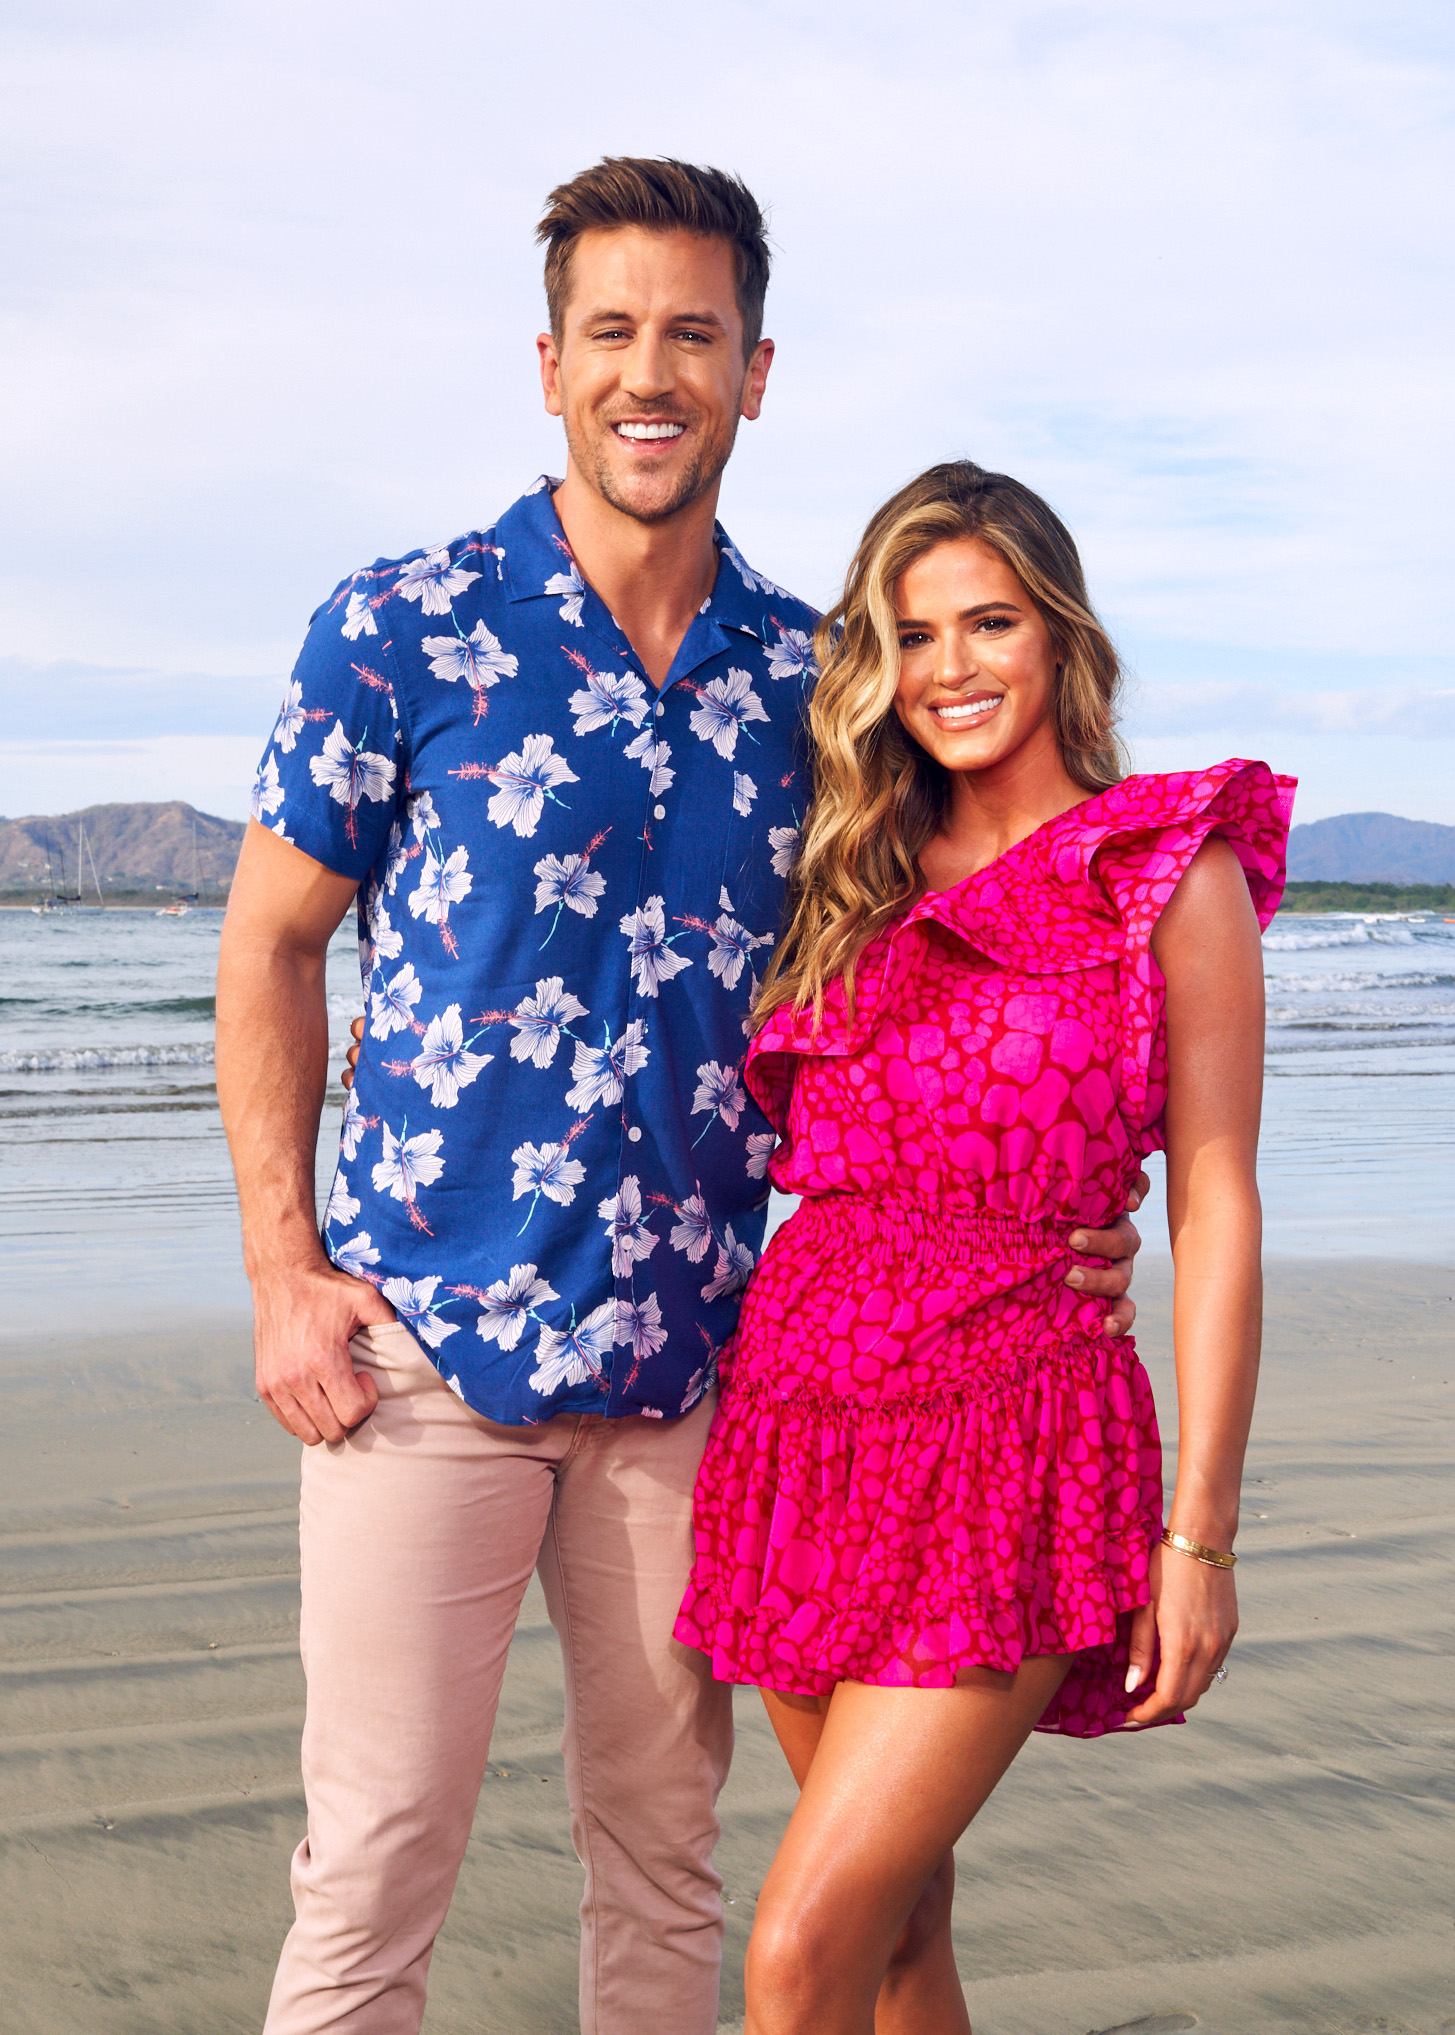 JoJo Fletcher and Jordan Rodgers